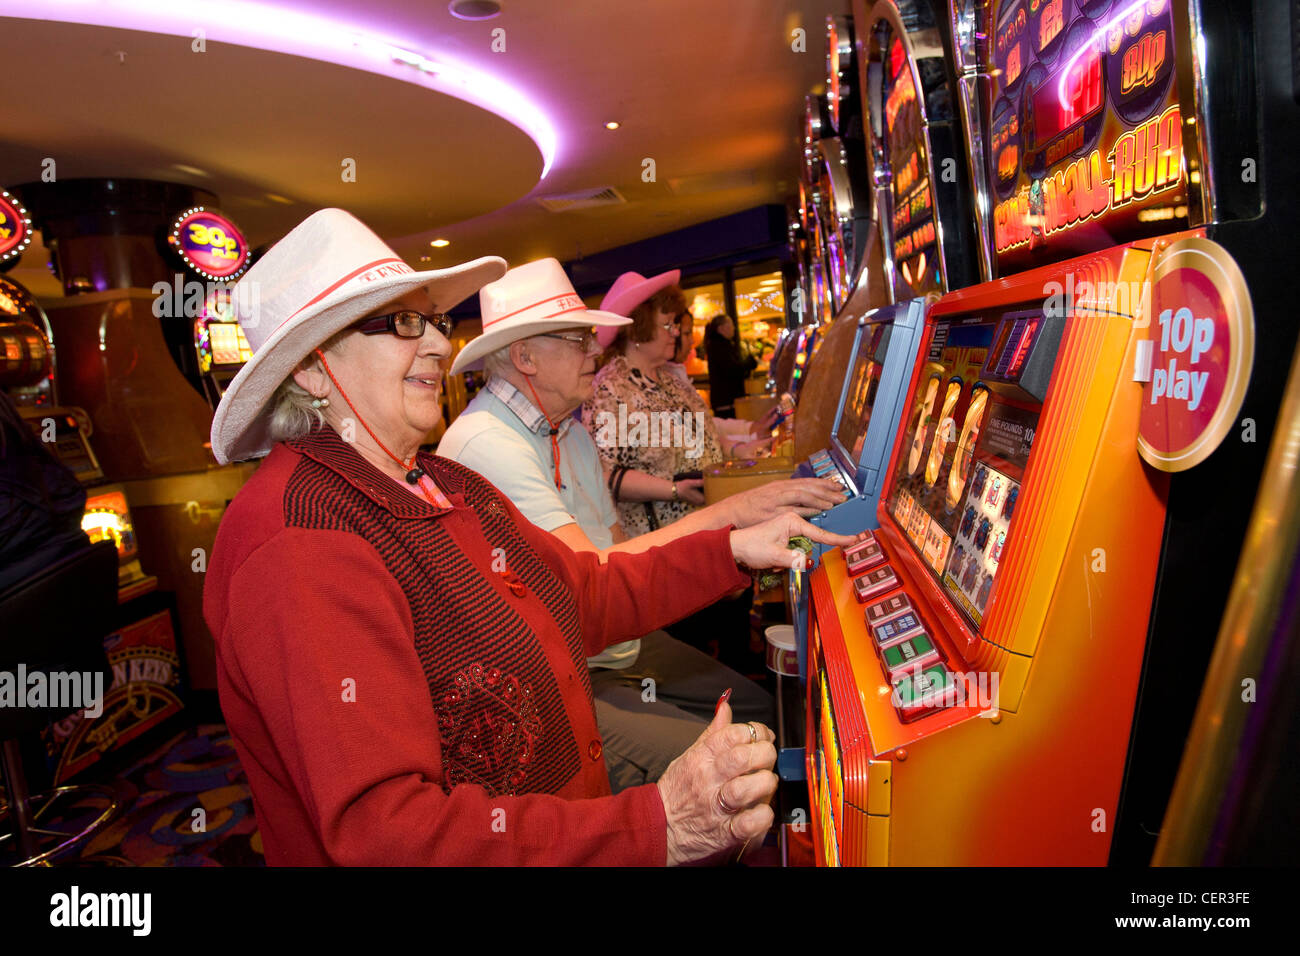 People playing fruit and slot machines in a Mecca Bingo club in Wednesbury, Sandwell, West Midlands. - Stock Image